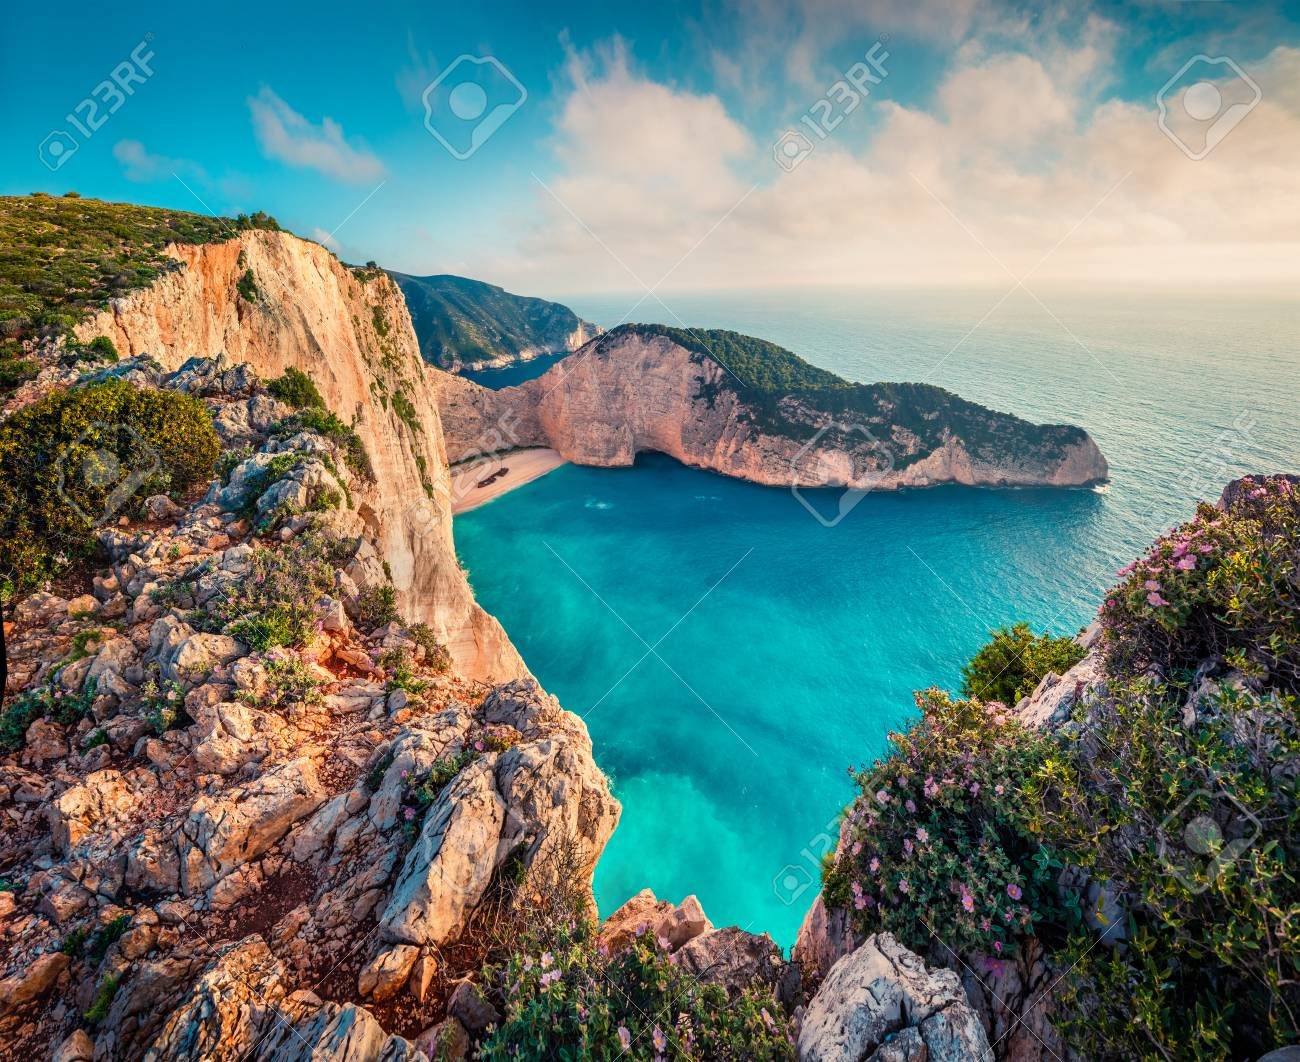 Colorful spring view of Navagio beach with shipwreck. Sunny morning seascape of Ionian Sea, Zakynthos (Zante) island, Greece, Europe. - 96466317